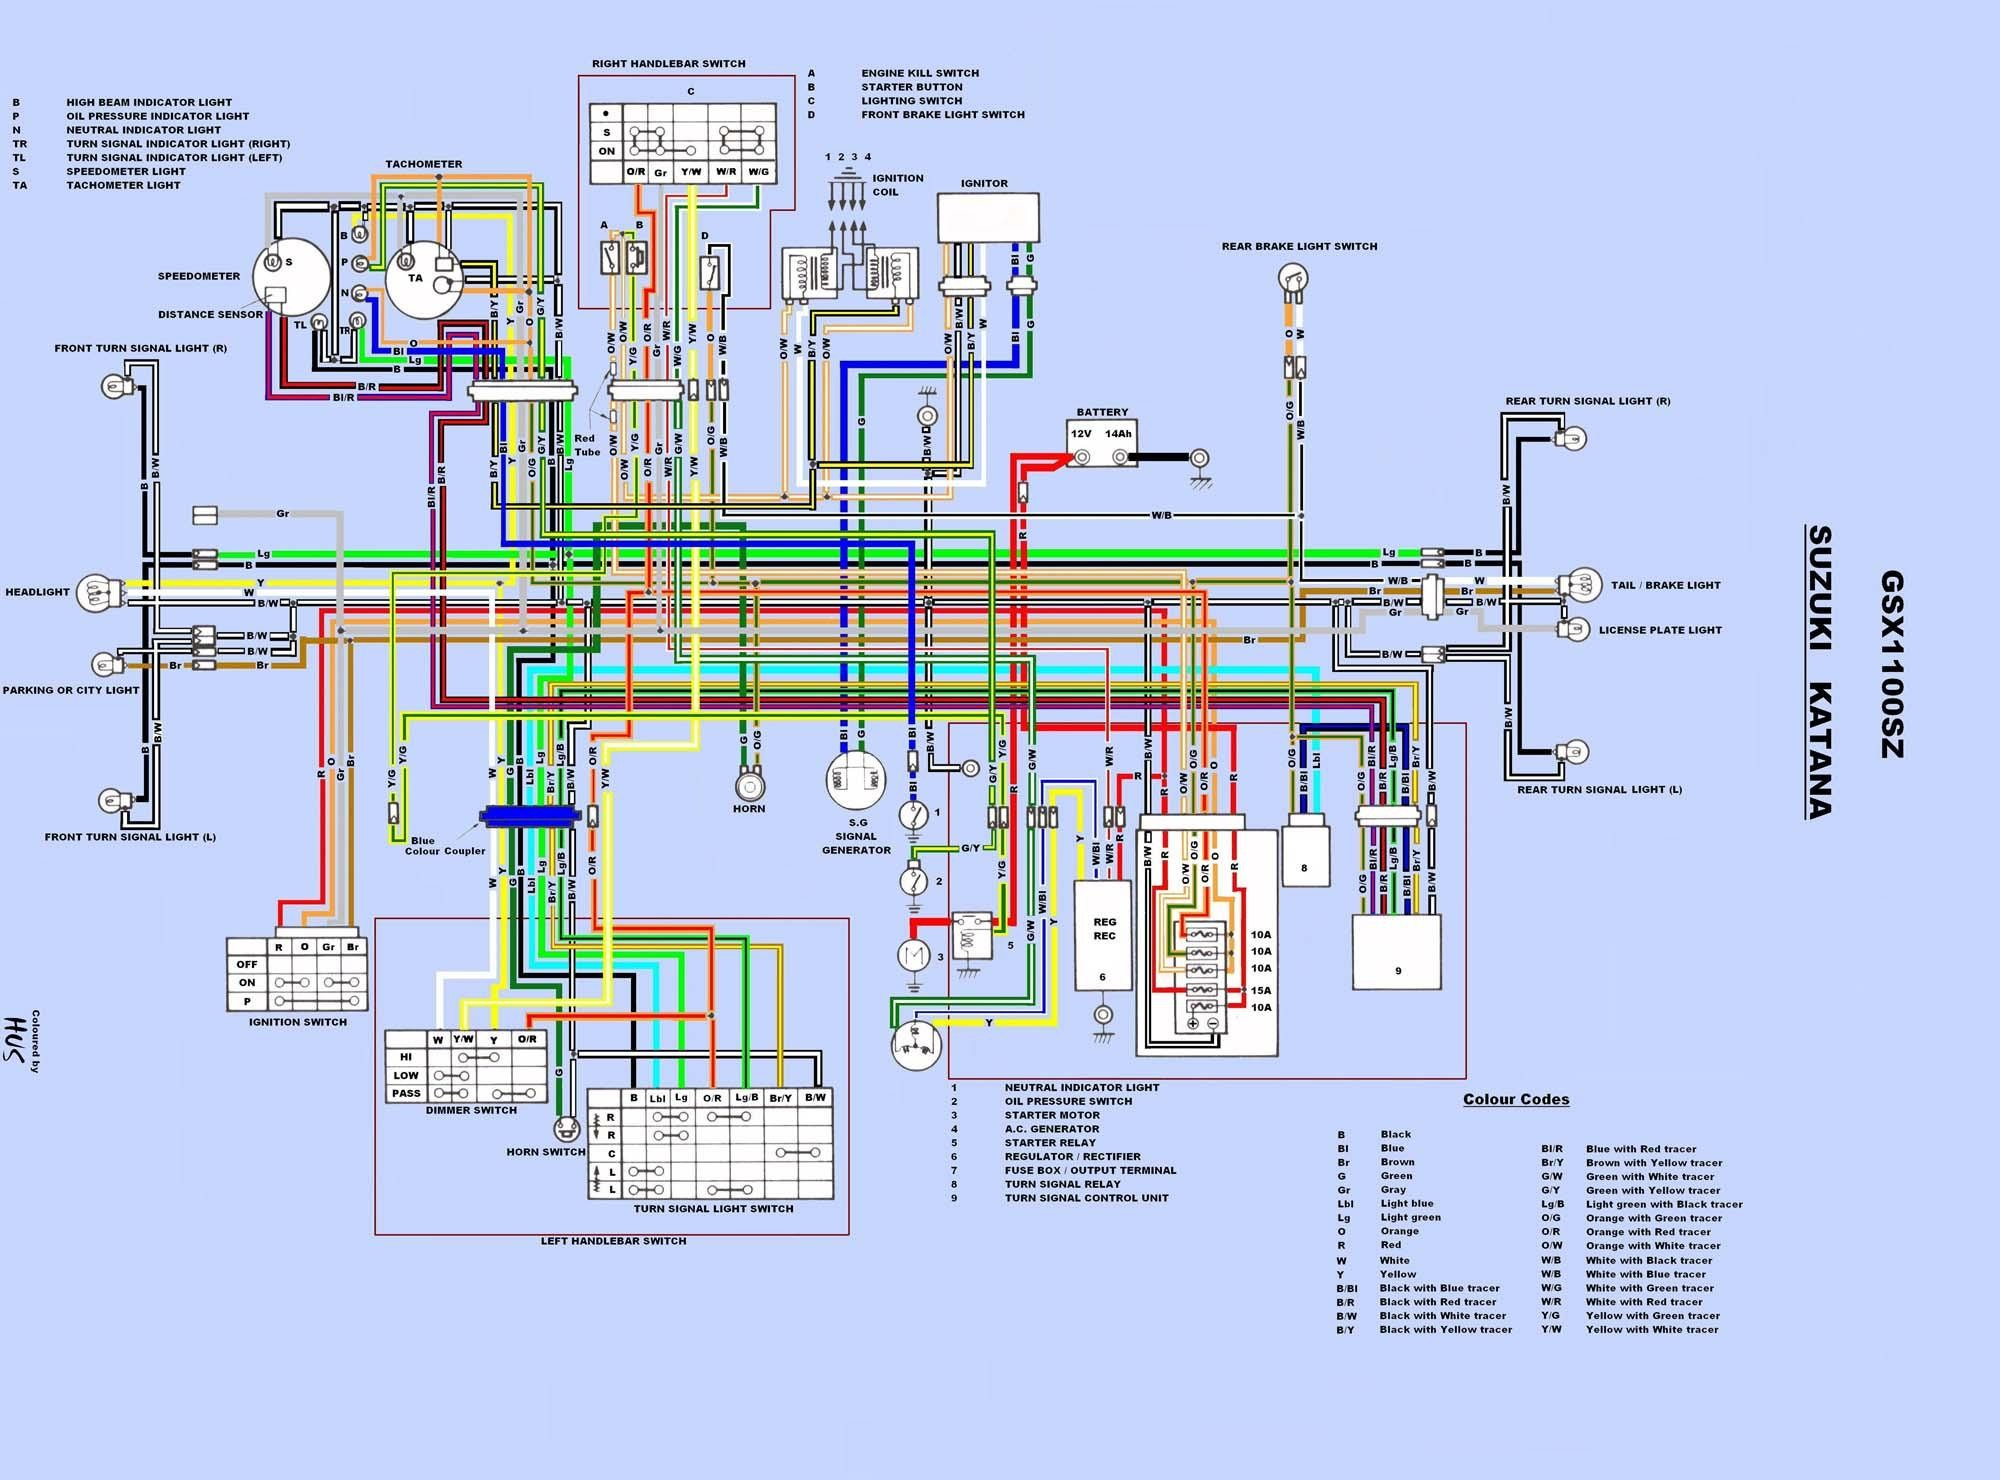 hight resolution of suzuki katana wiring diagram wiring diagrams terms 1999 suzuki katana 750 wiring diagram 2001 suzuki katana